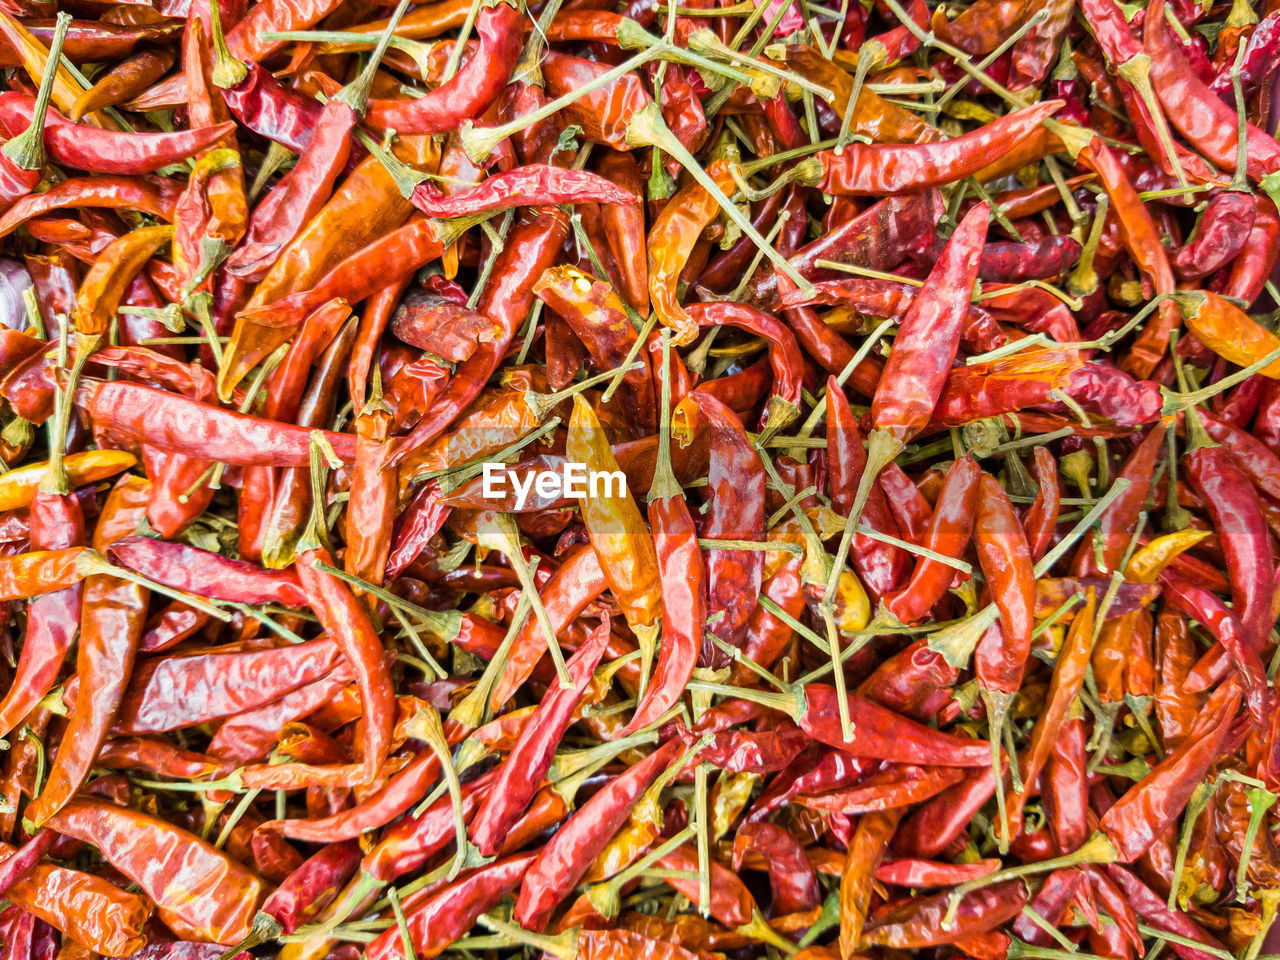 Top view of a pile of dried peppers, red chili that are spicy flavour and used for cooking.